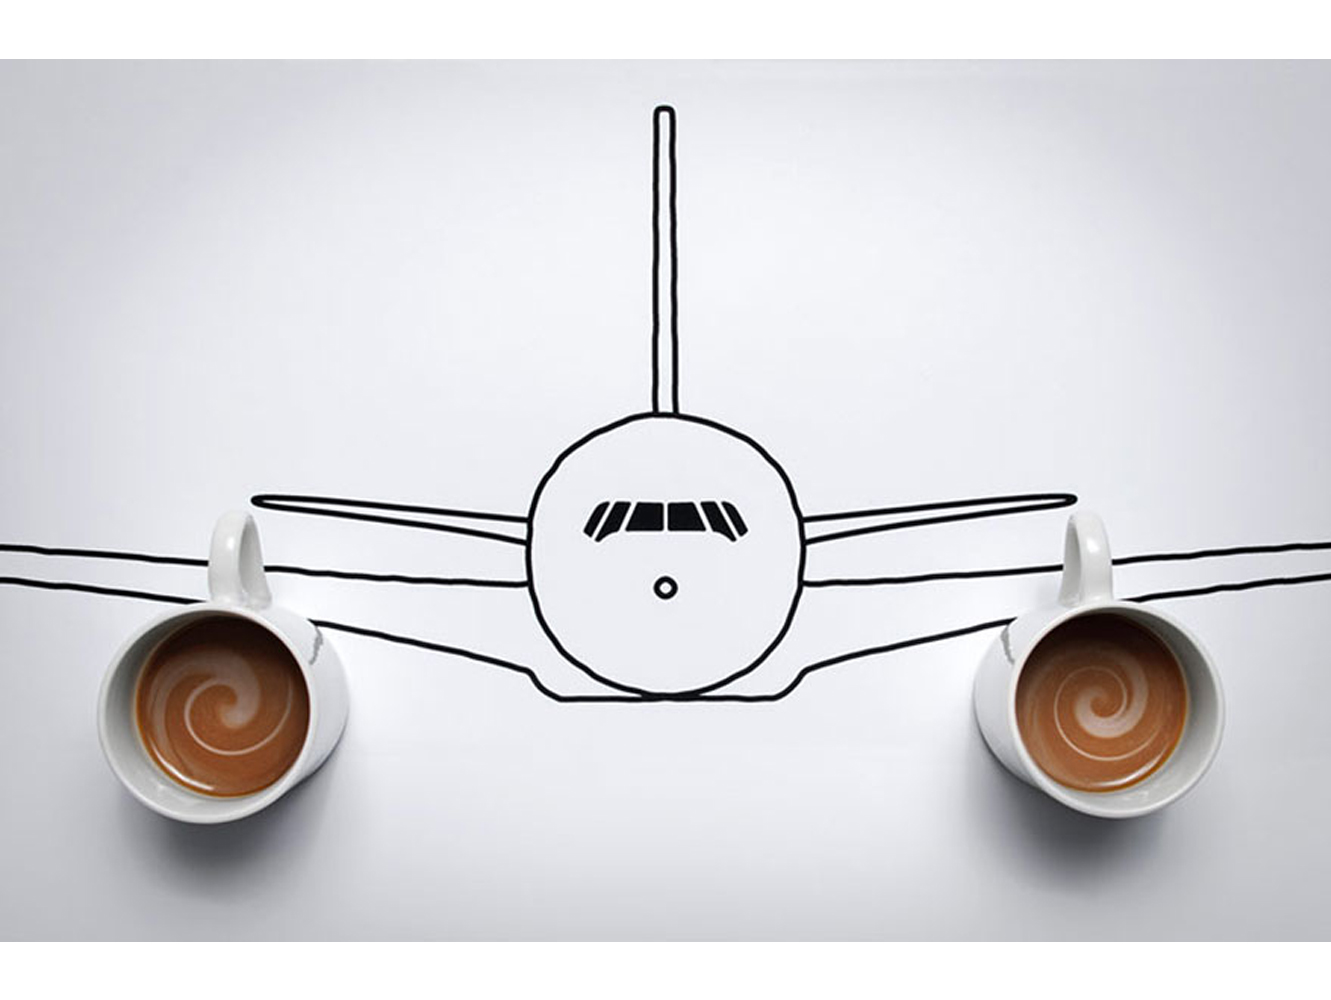 Takeoff in the morning Domenic Bahmann